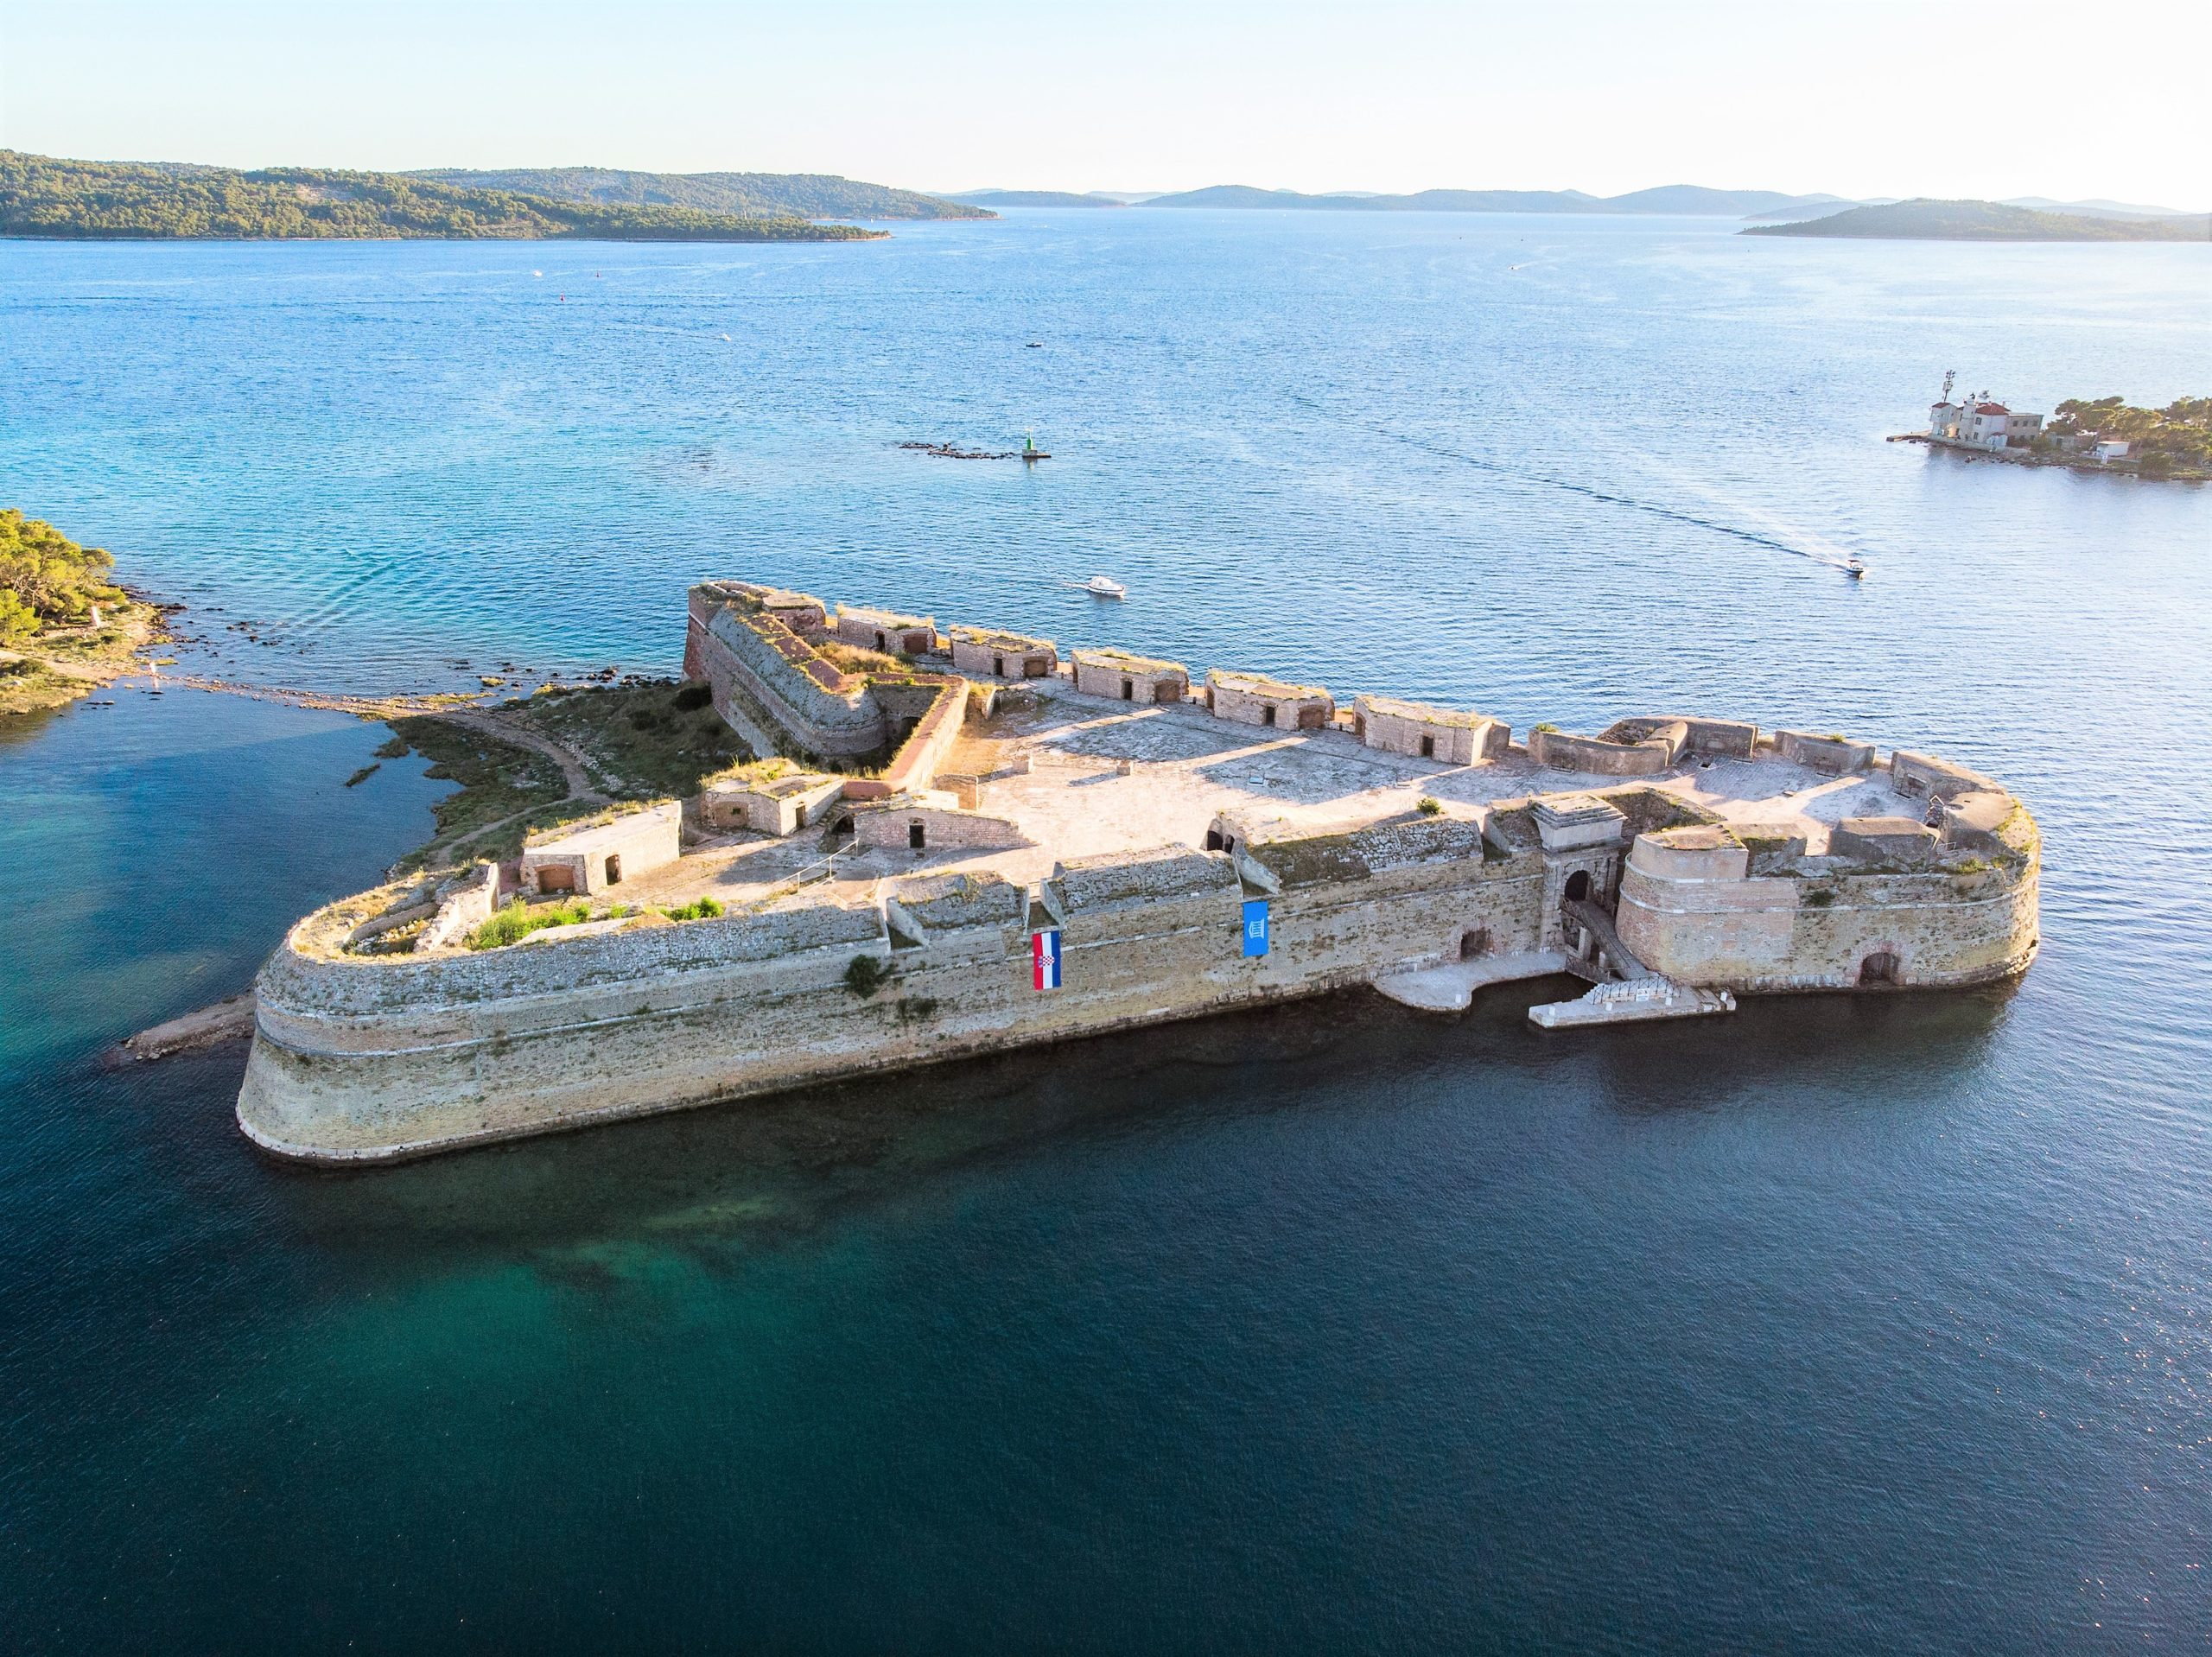 Tourism Valorization of St Nicholas' Fortress in the St Anthony's Channel